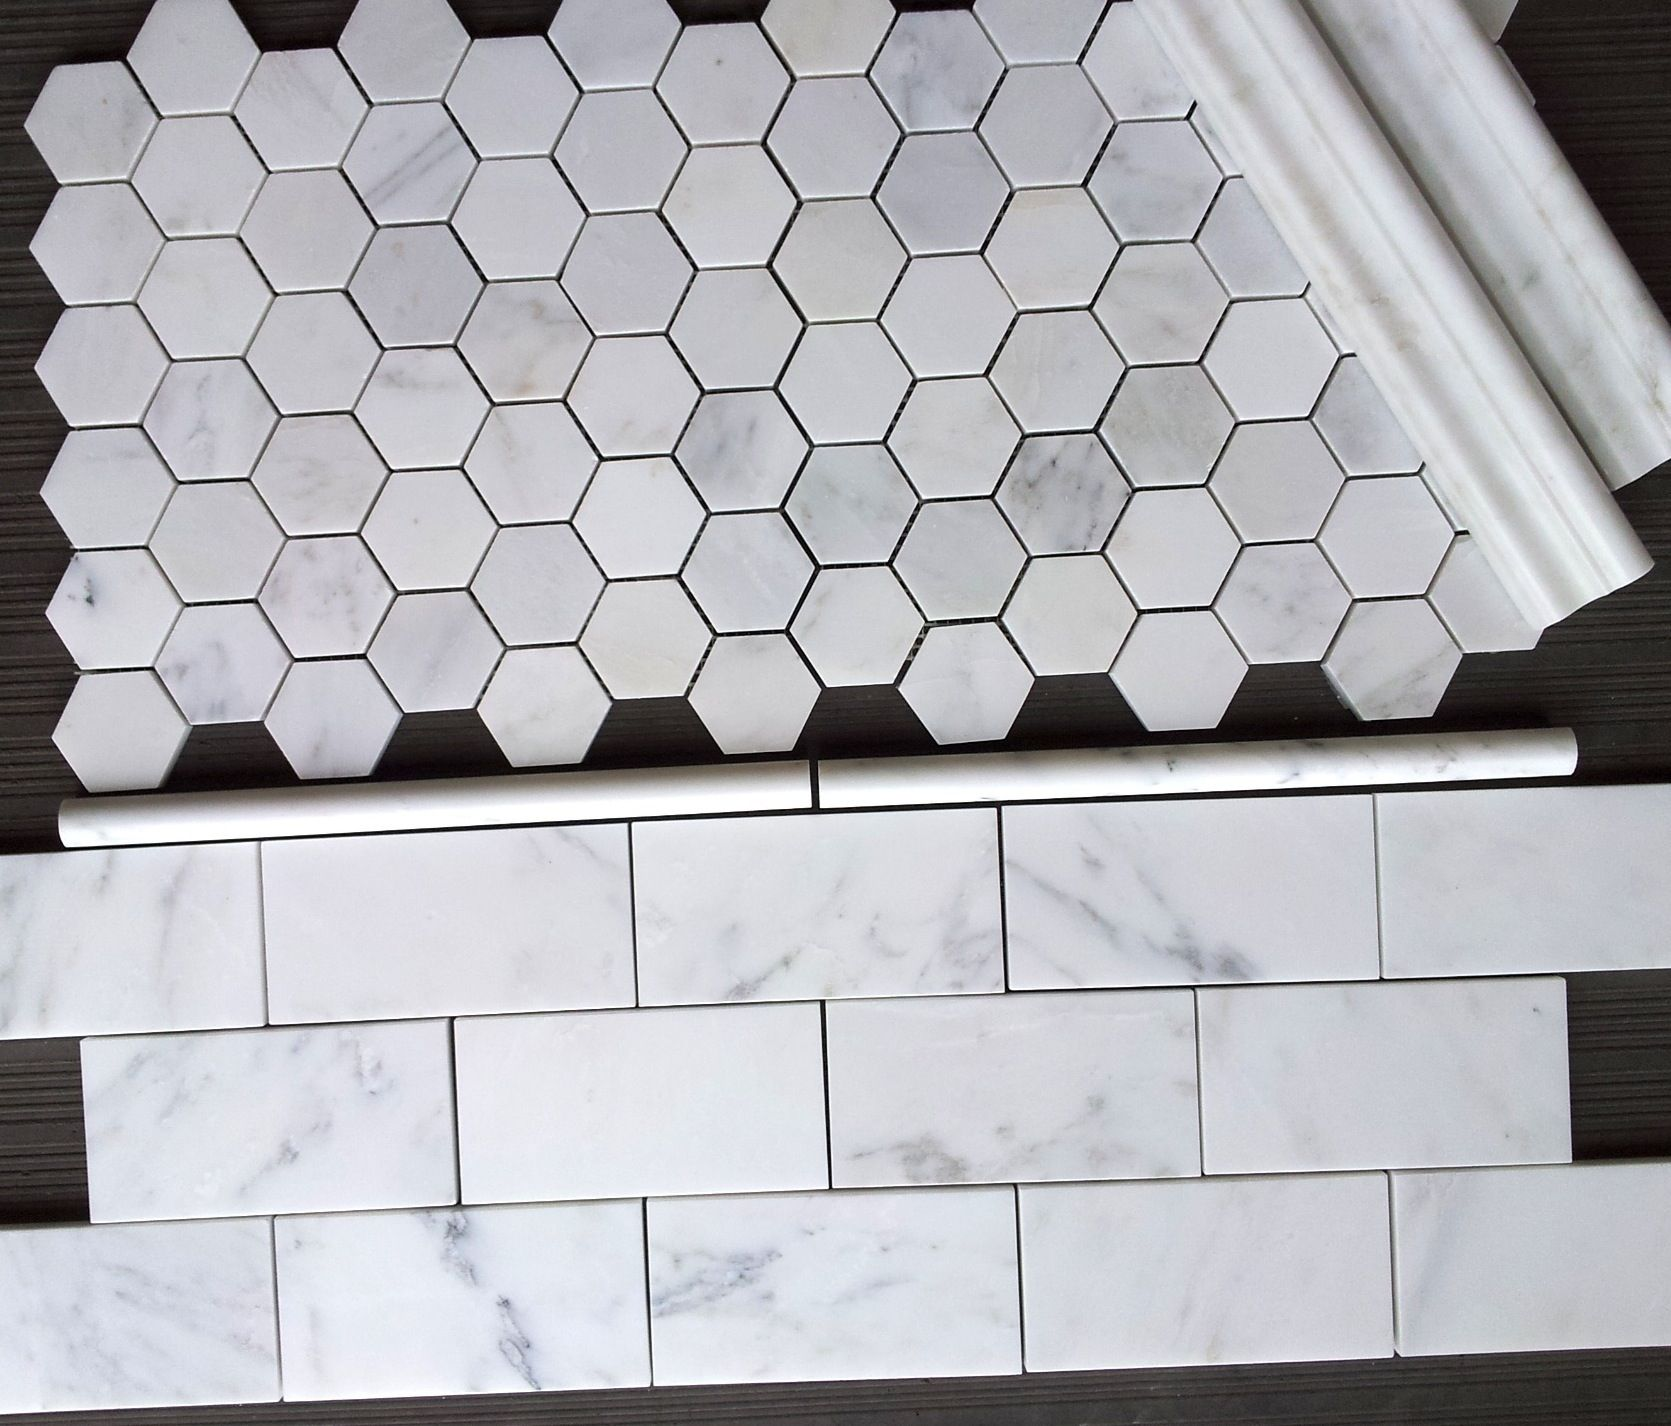 Carrara venato 3x6 subway tile and venato 2 hexagon mosaic tile from thebuilderdepot Marble hex tile bathroom floor